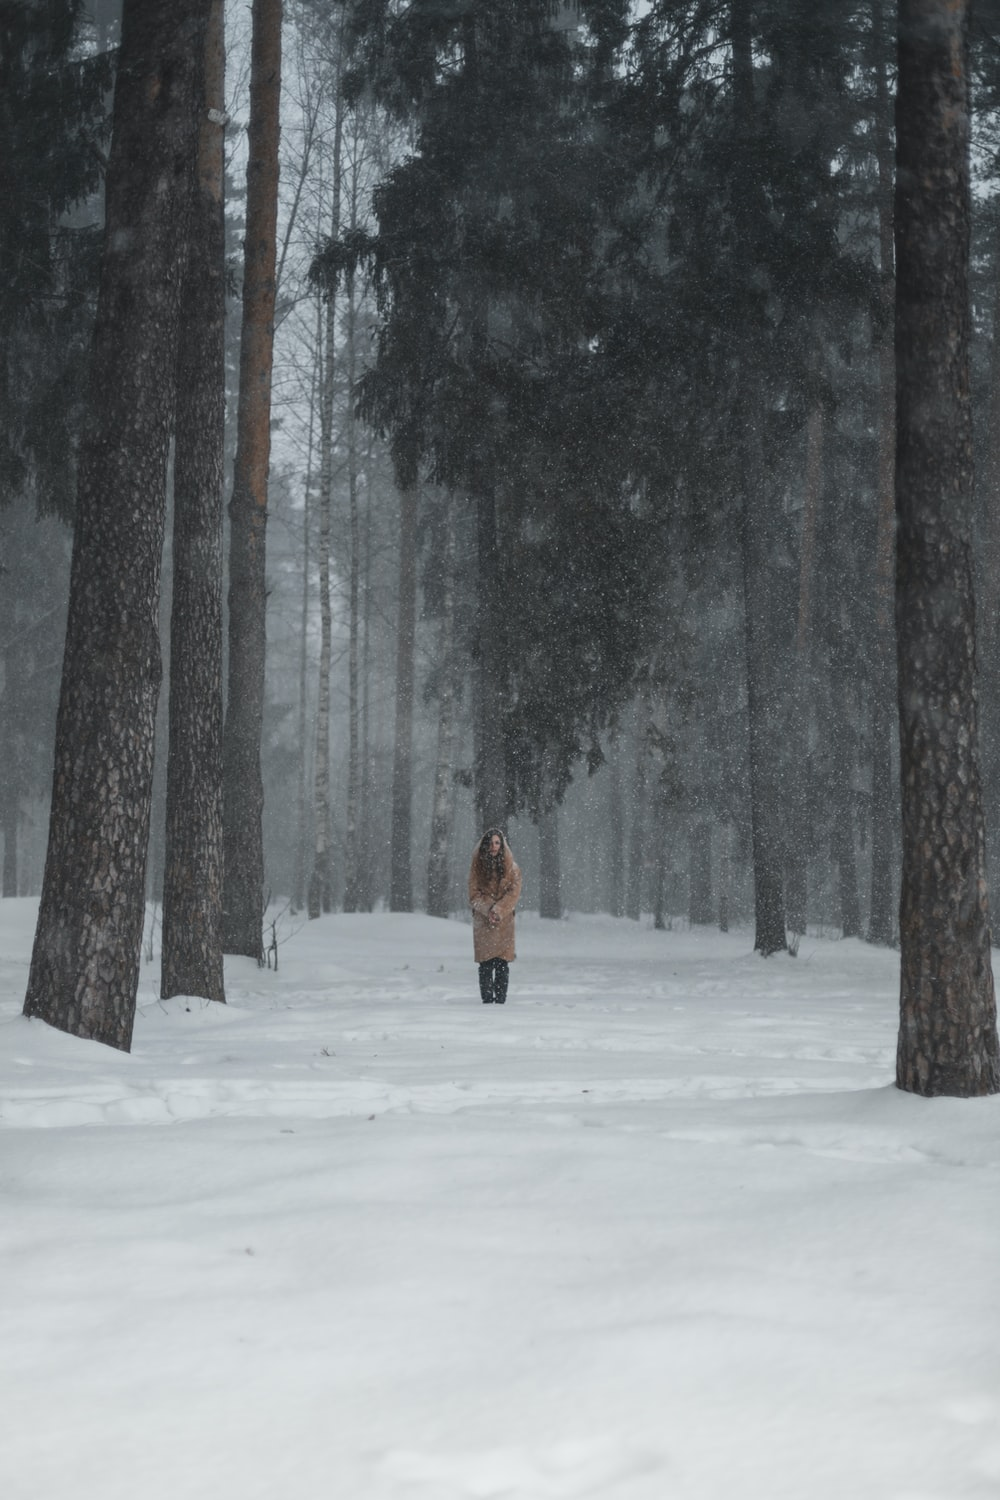 person in brown jacket walking on snow covered ground